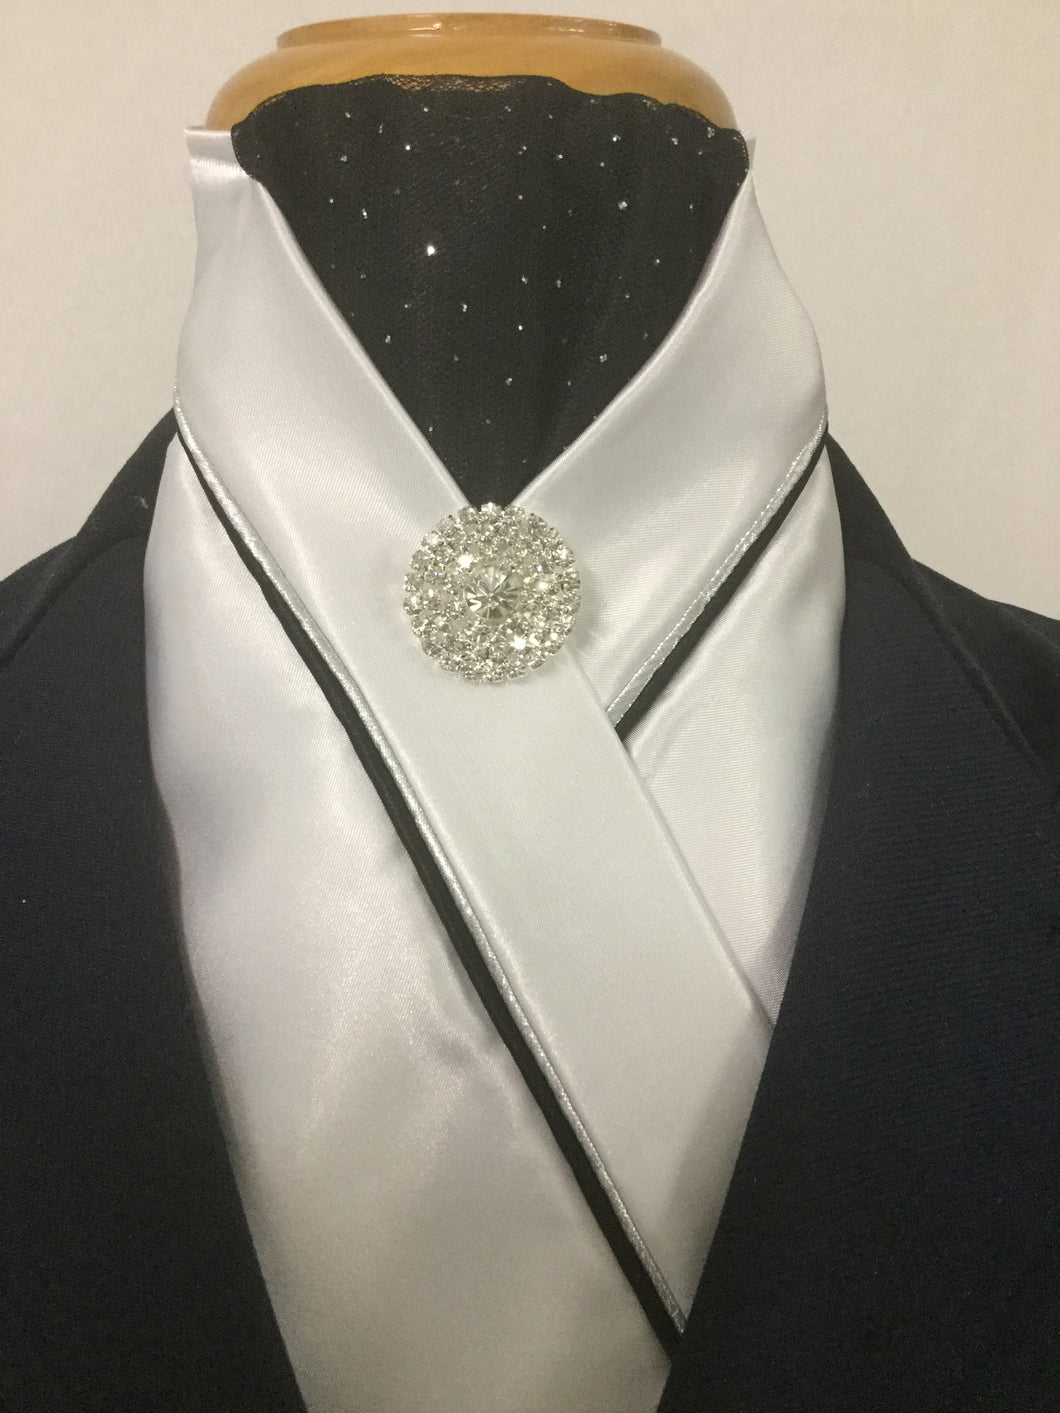 HHD Custom White Satin Pretied  Stock Tie Black & Silver Bling